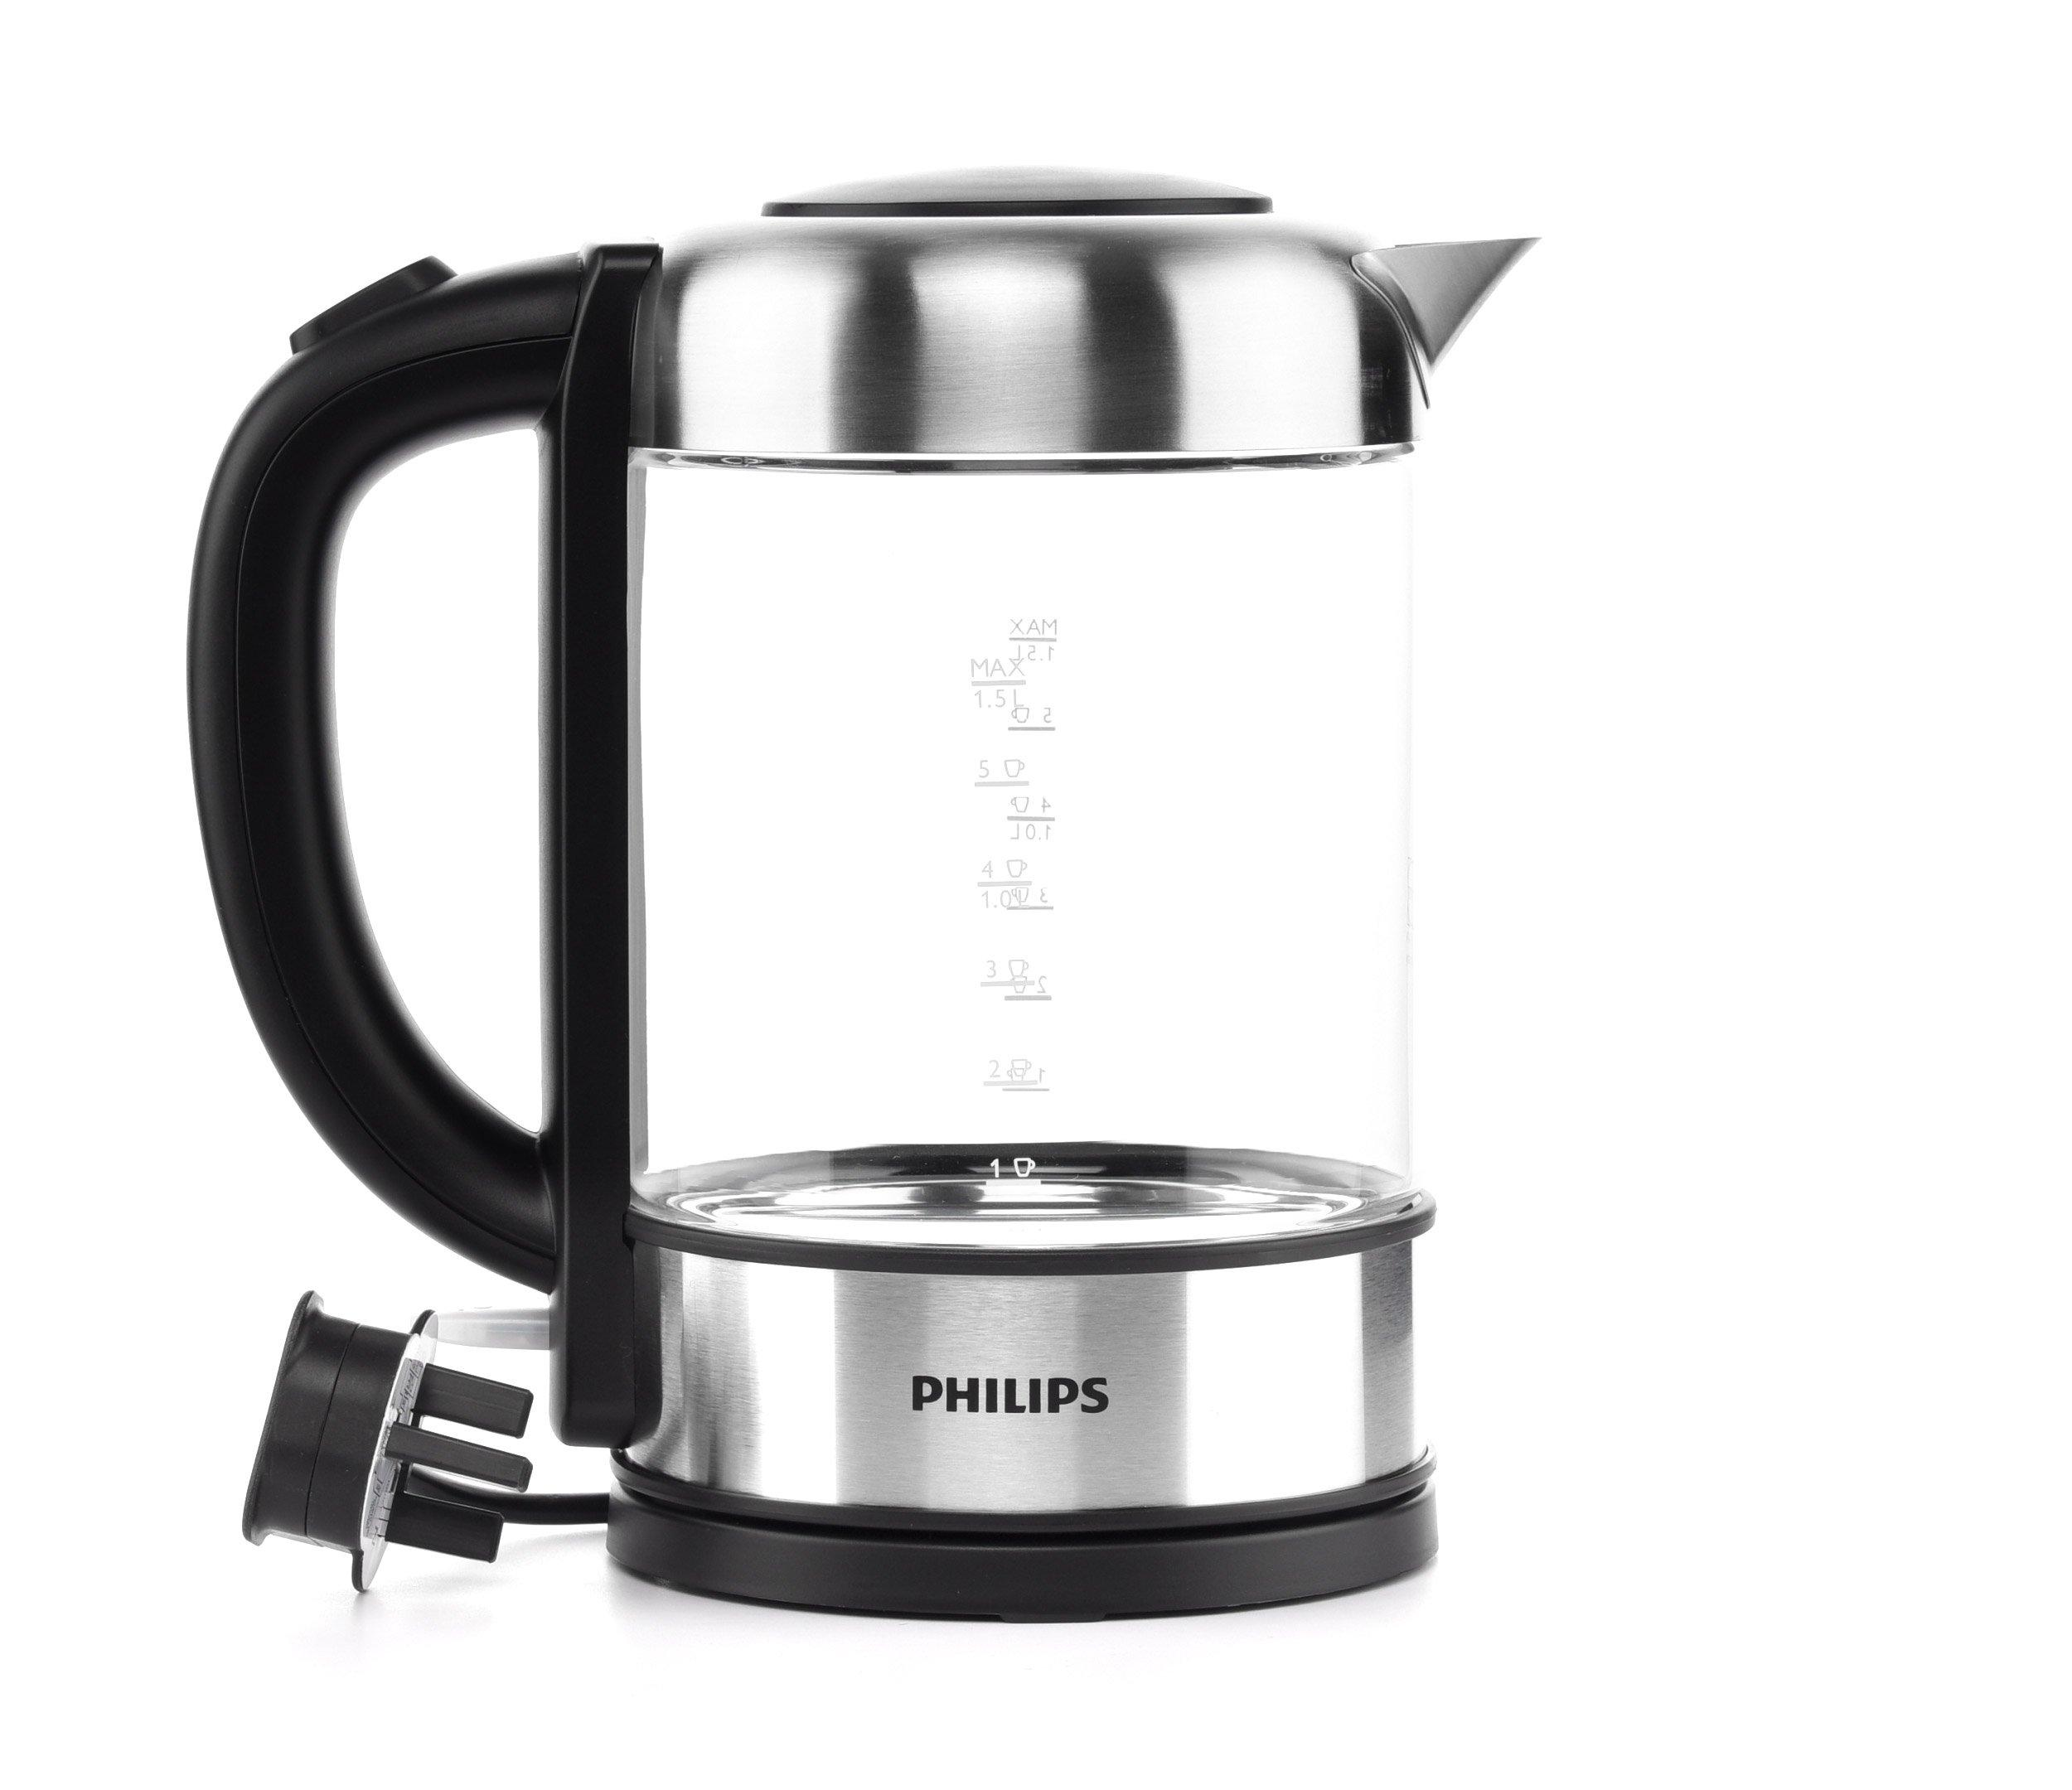 Philips Viva Collection Kettle 1.5L 2200W